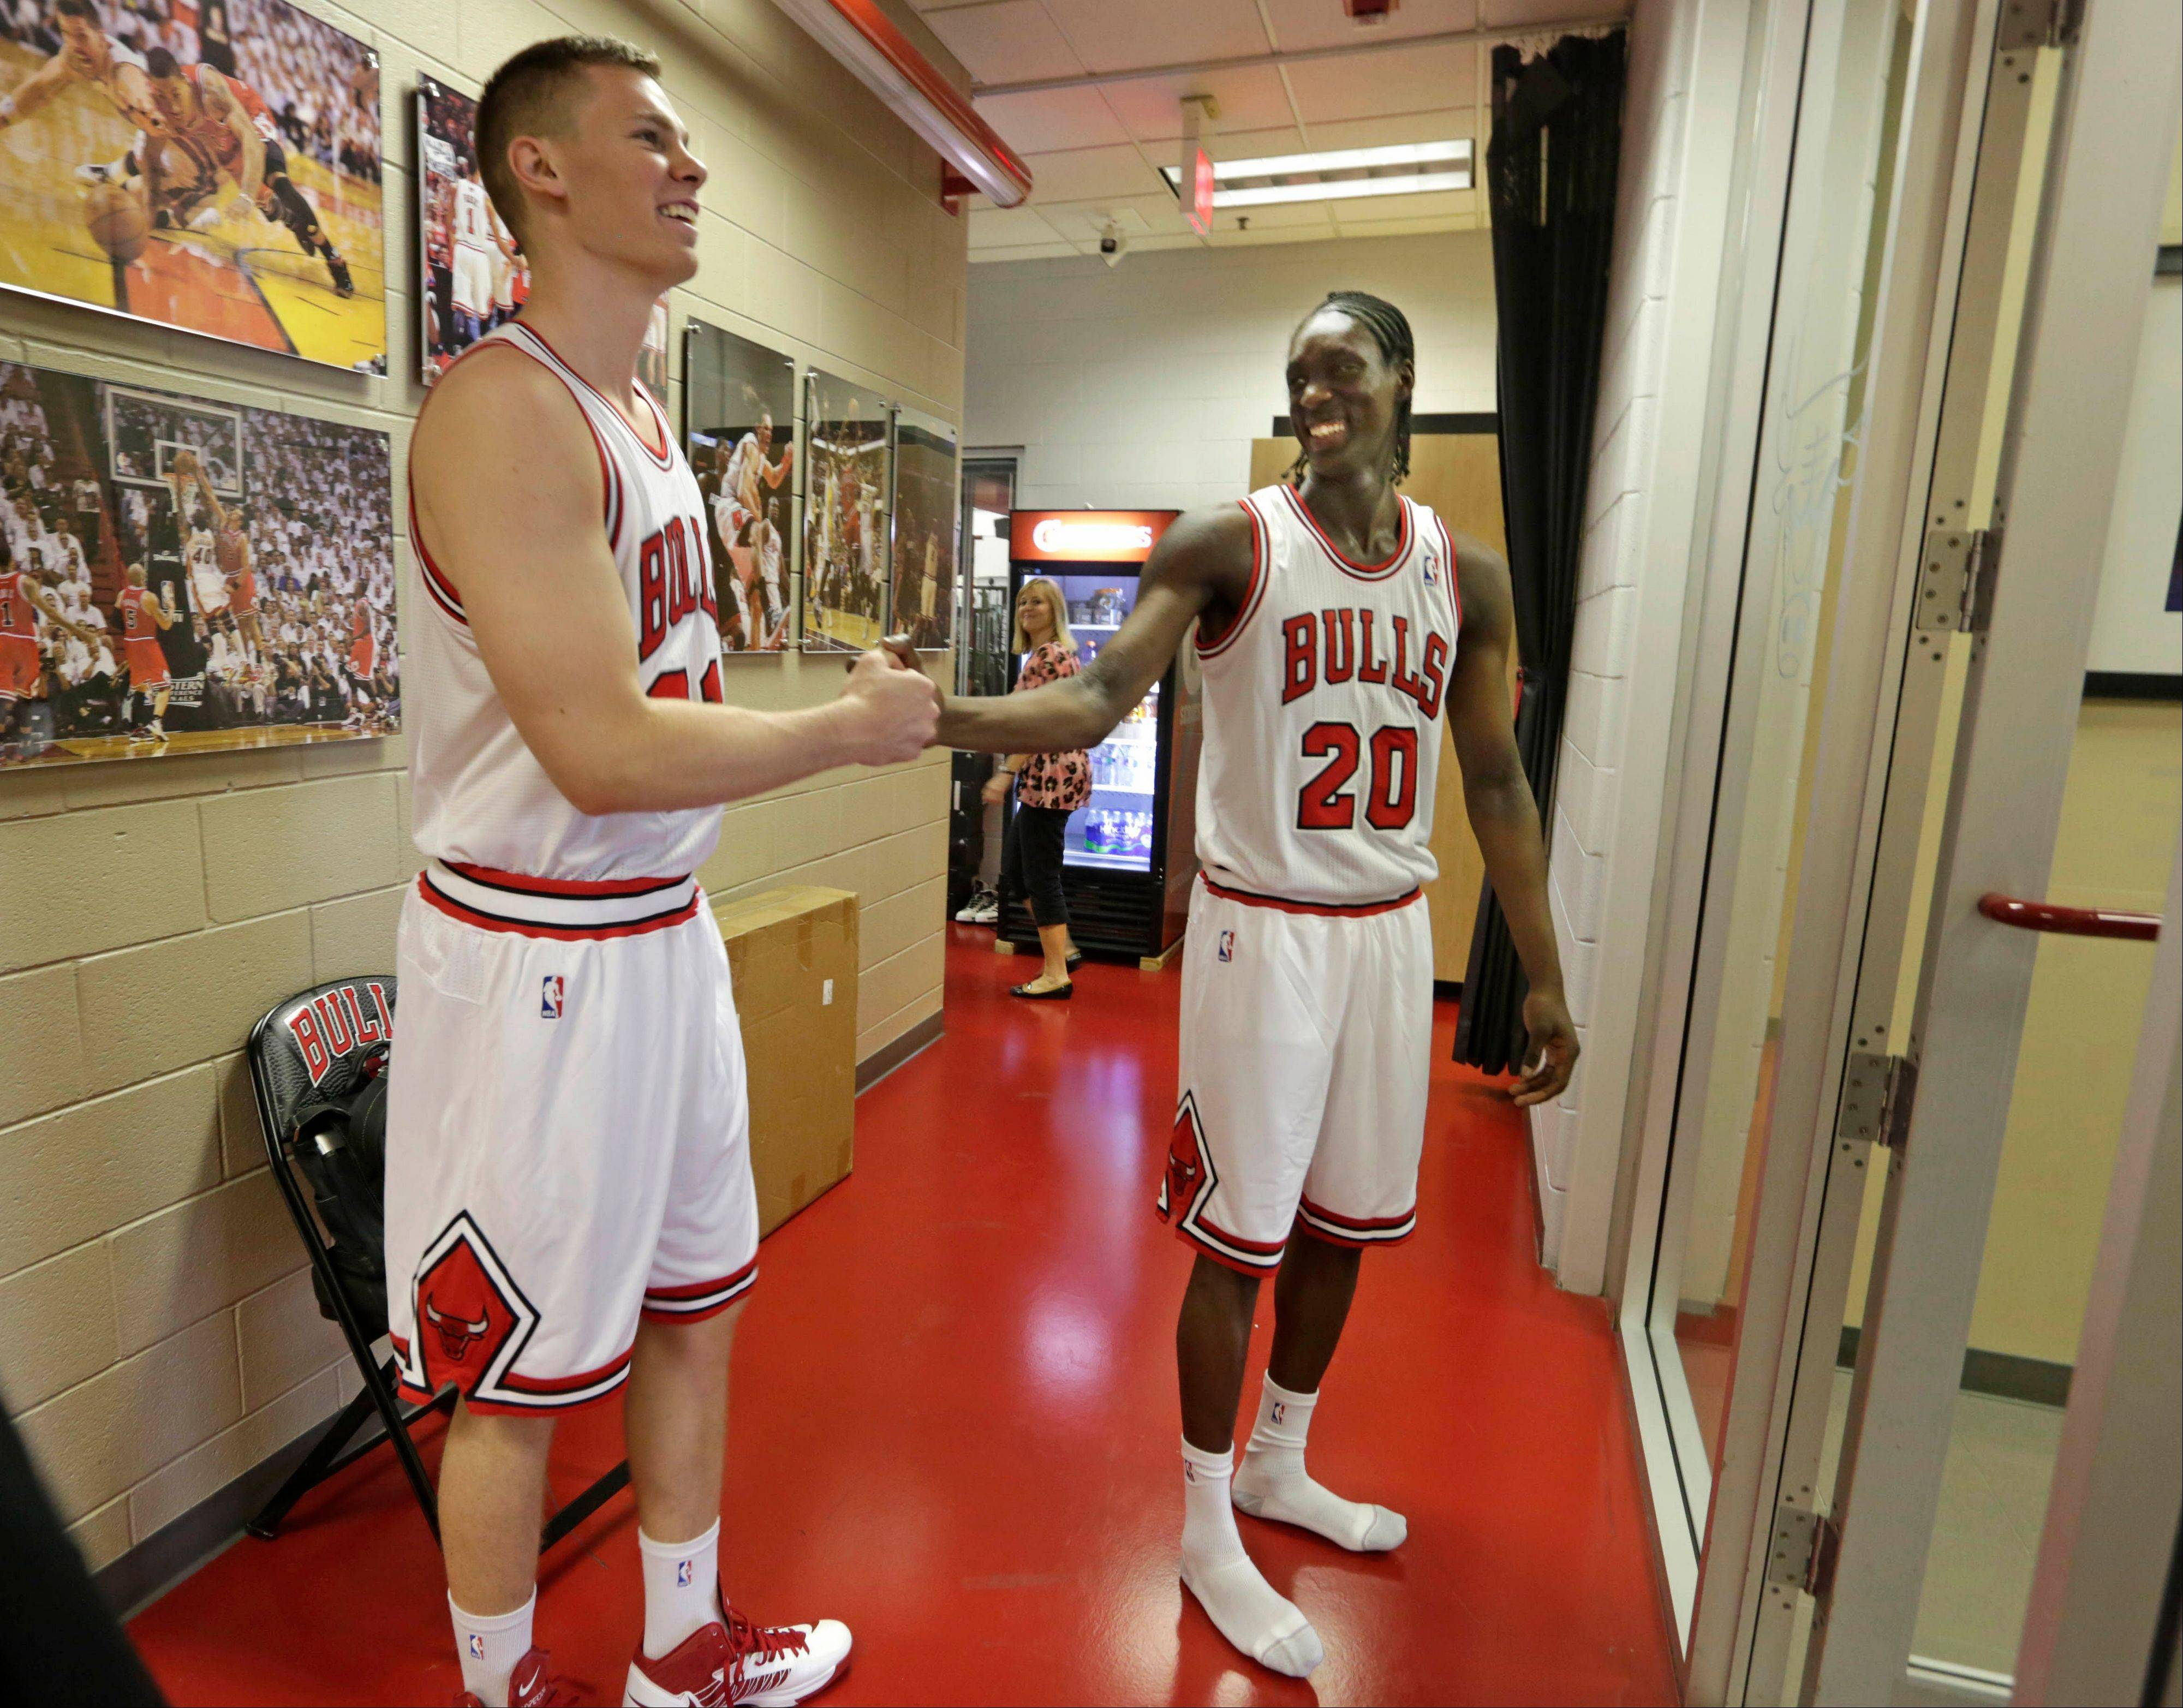 Snell's hooked on emulating Pippen